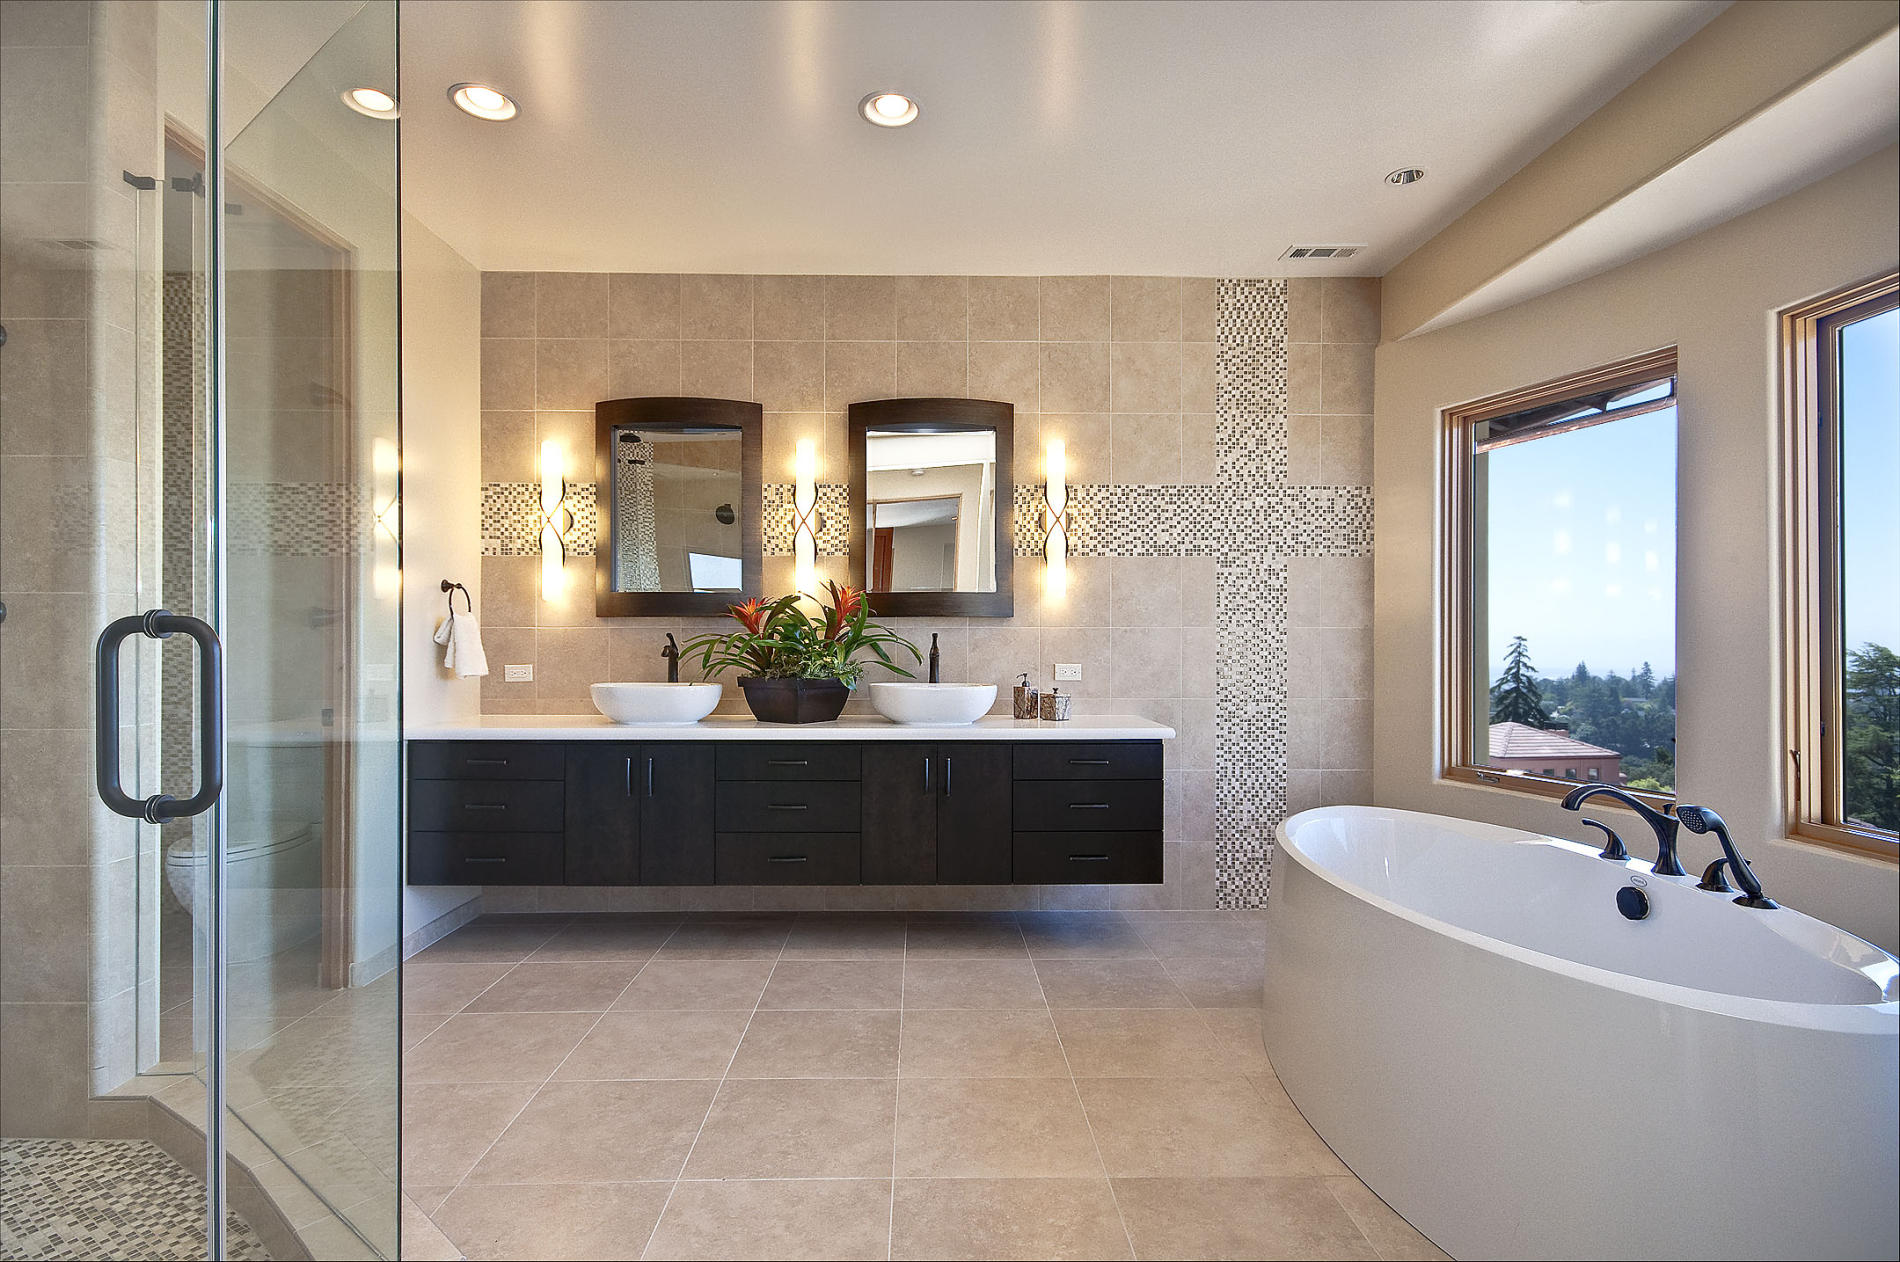 Big master bathroom ideas - Why You Should Planning Master Bathroom Layouts Midcityeast